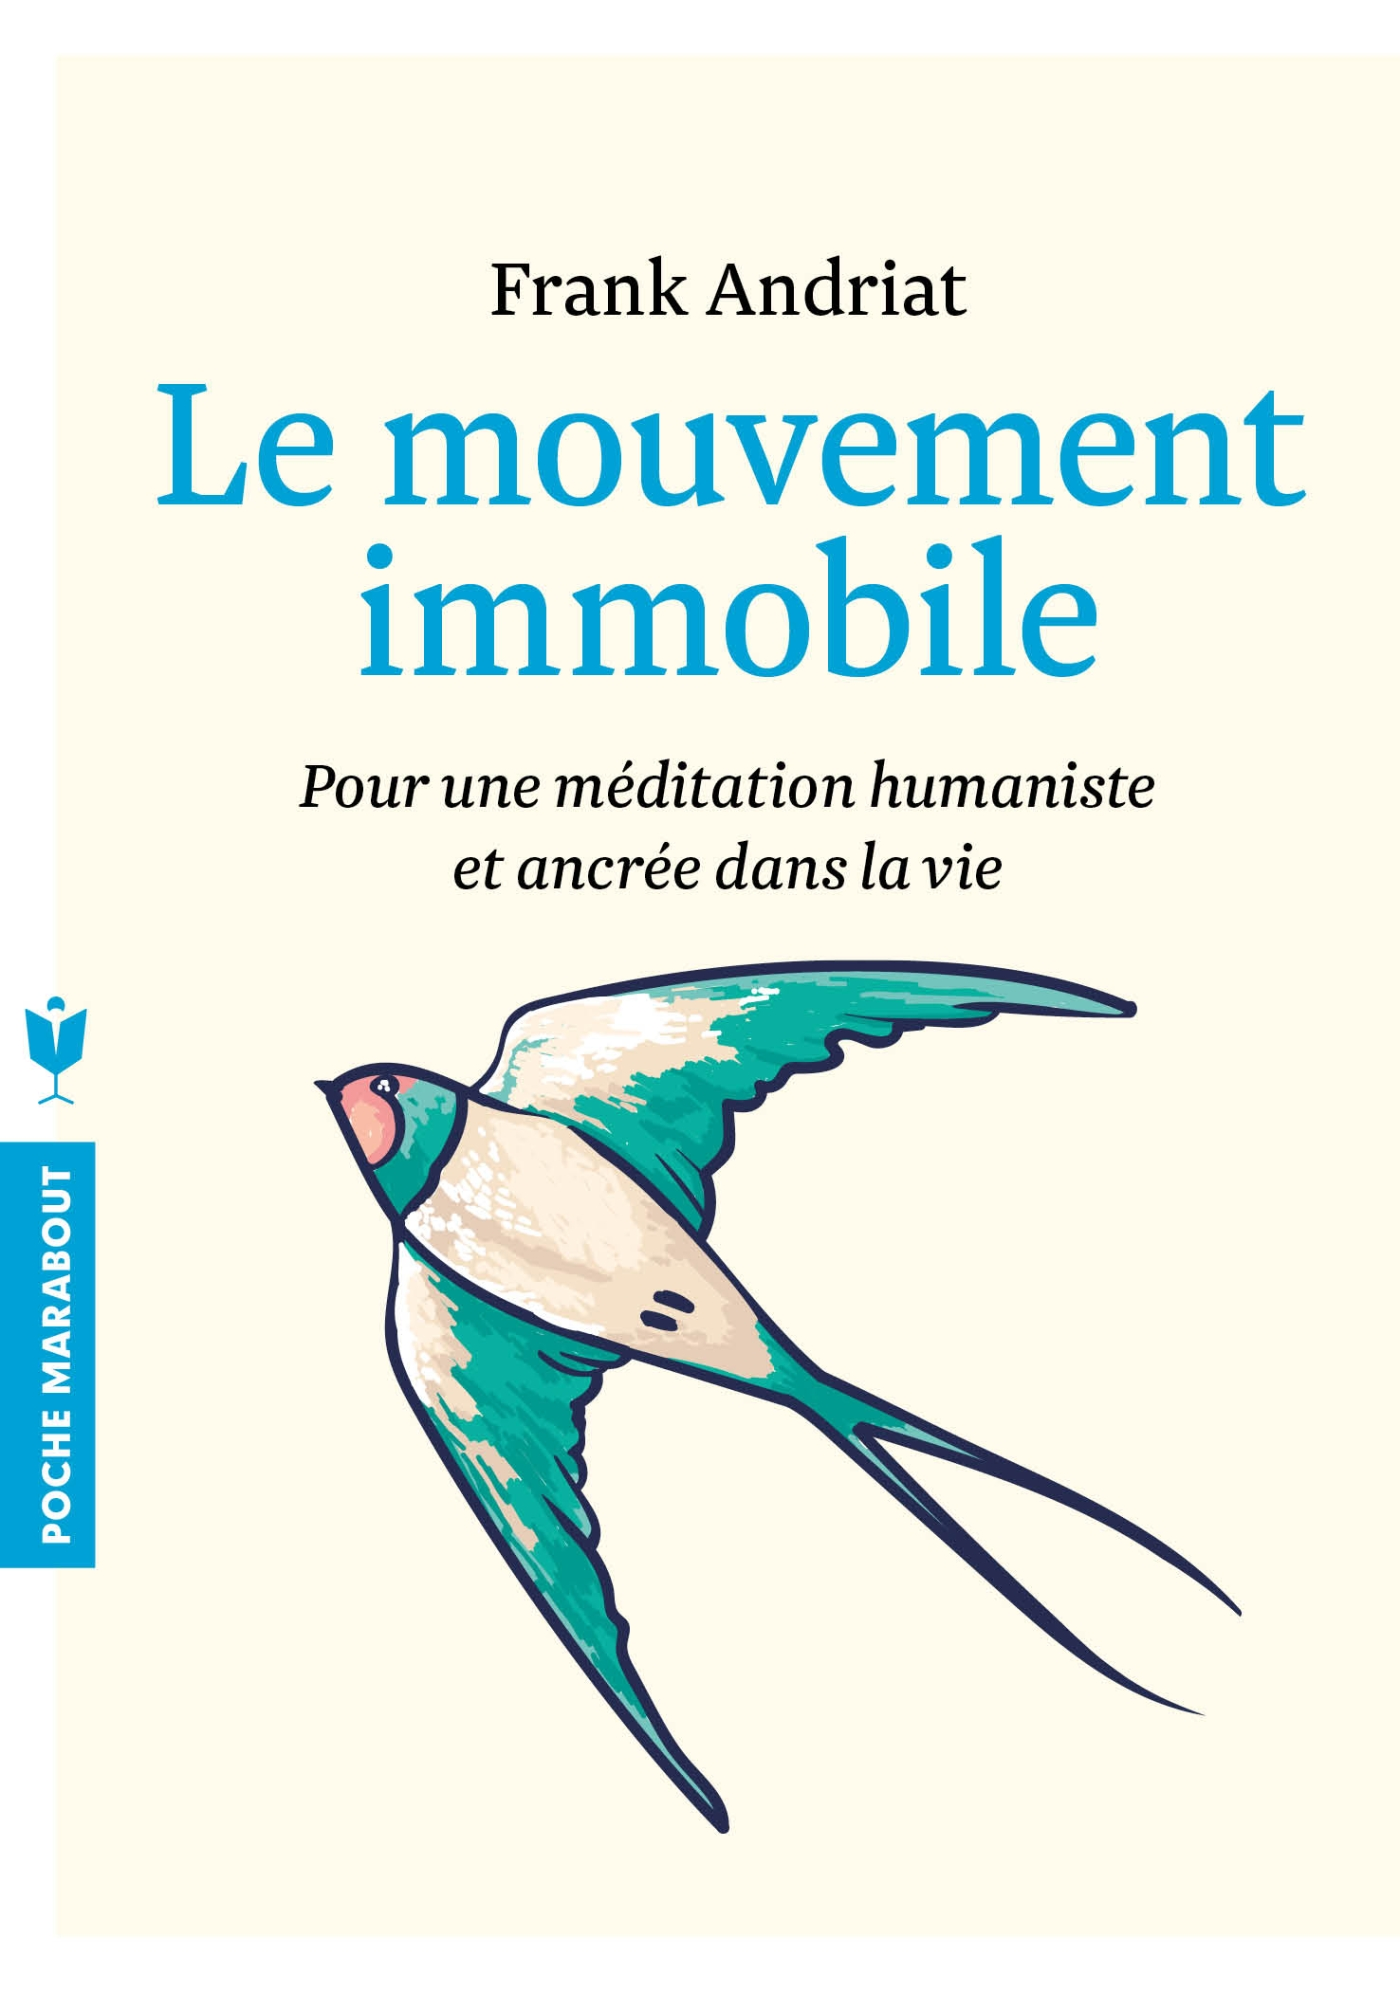 Le mouvement immobile